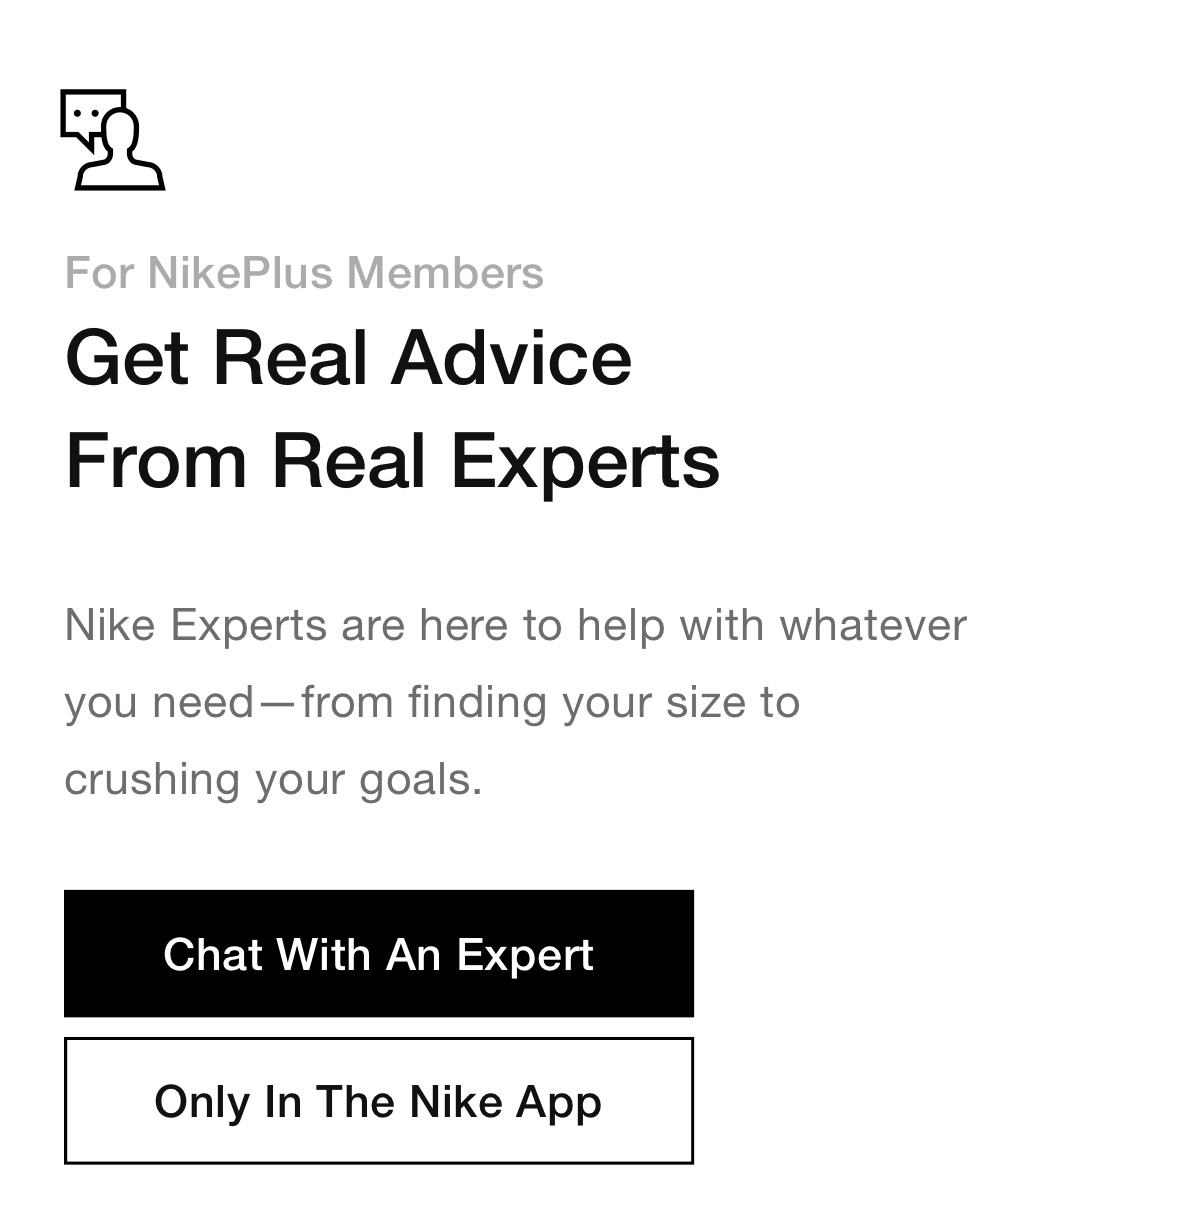 Chat With An Expert In The Nike App